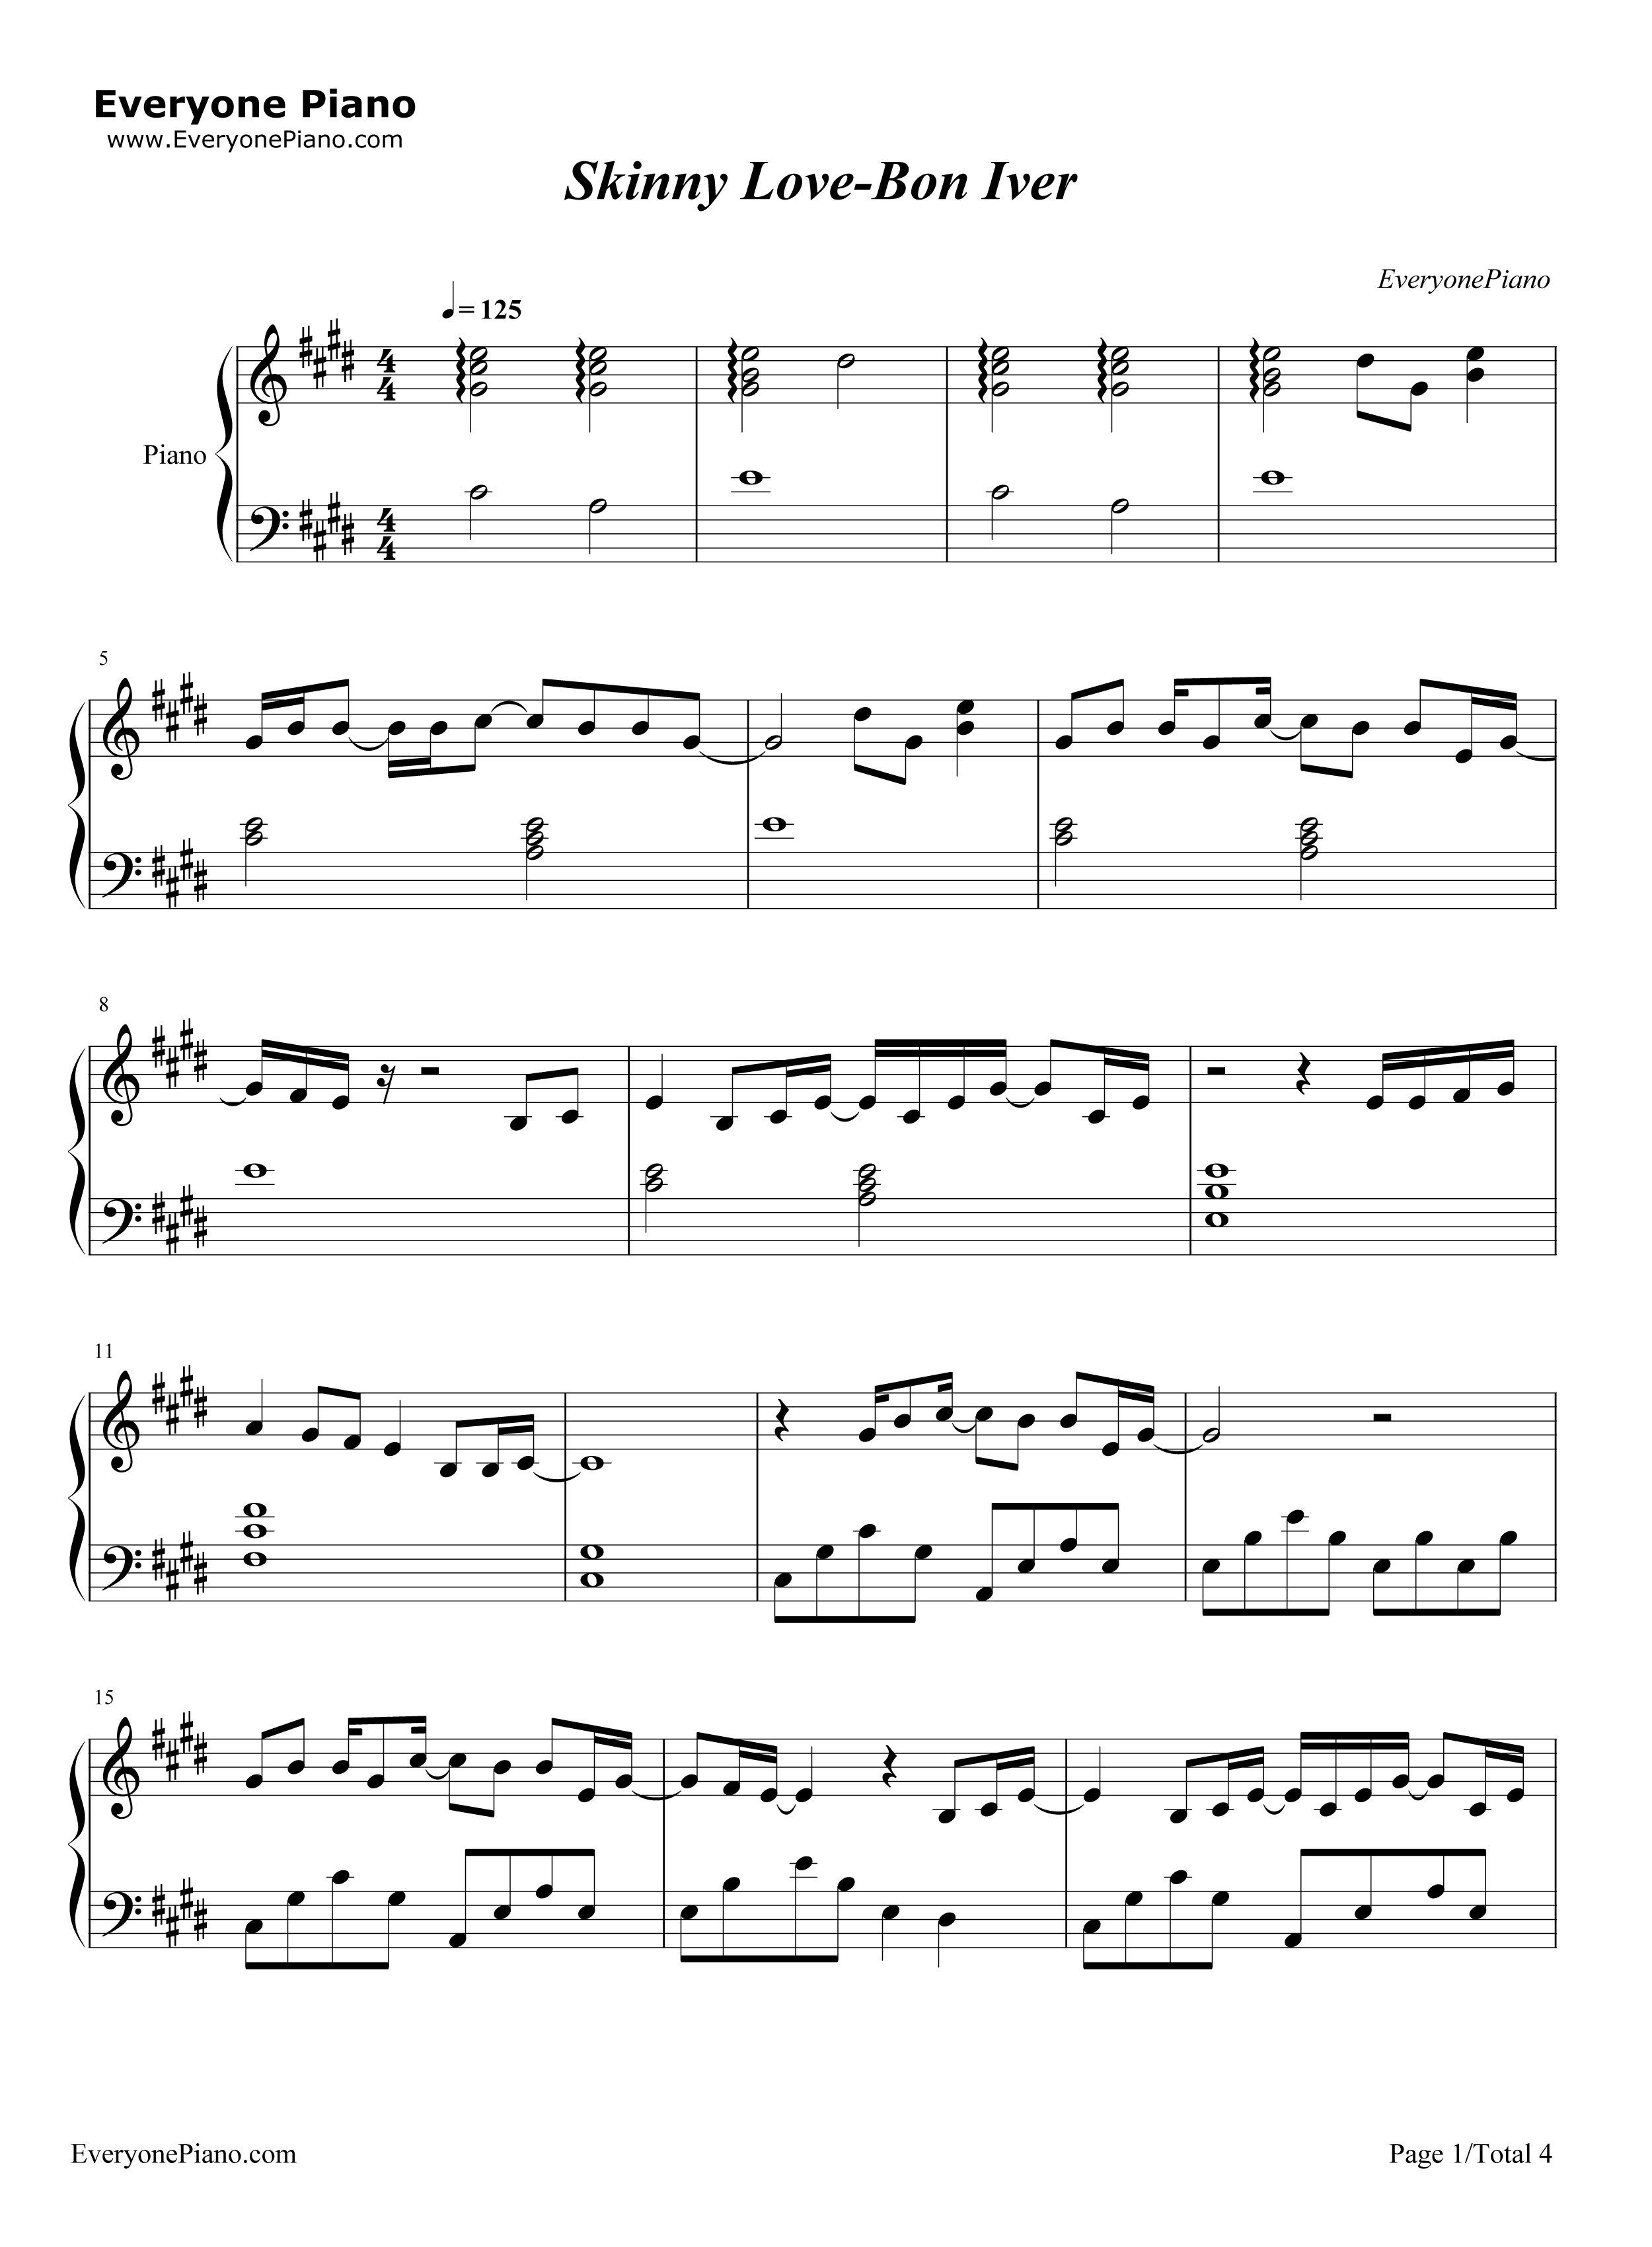 Skinny Love-Bon Iver Stave Preview 1-Free Piano Sheet Music u0026 Piano Chords